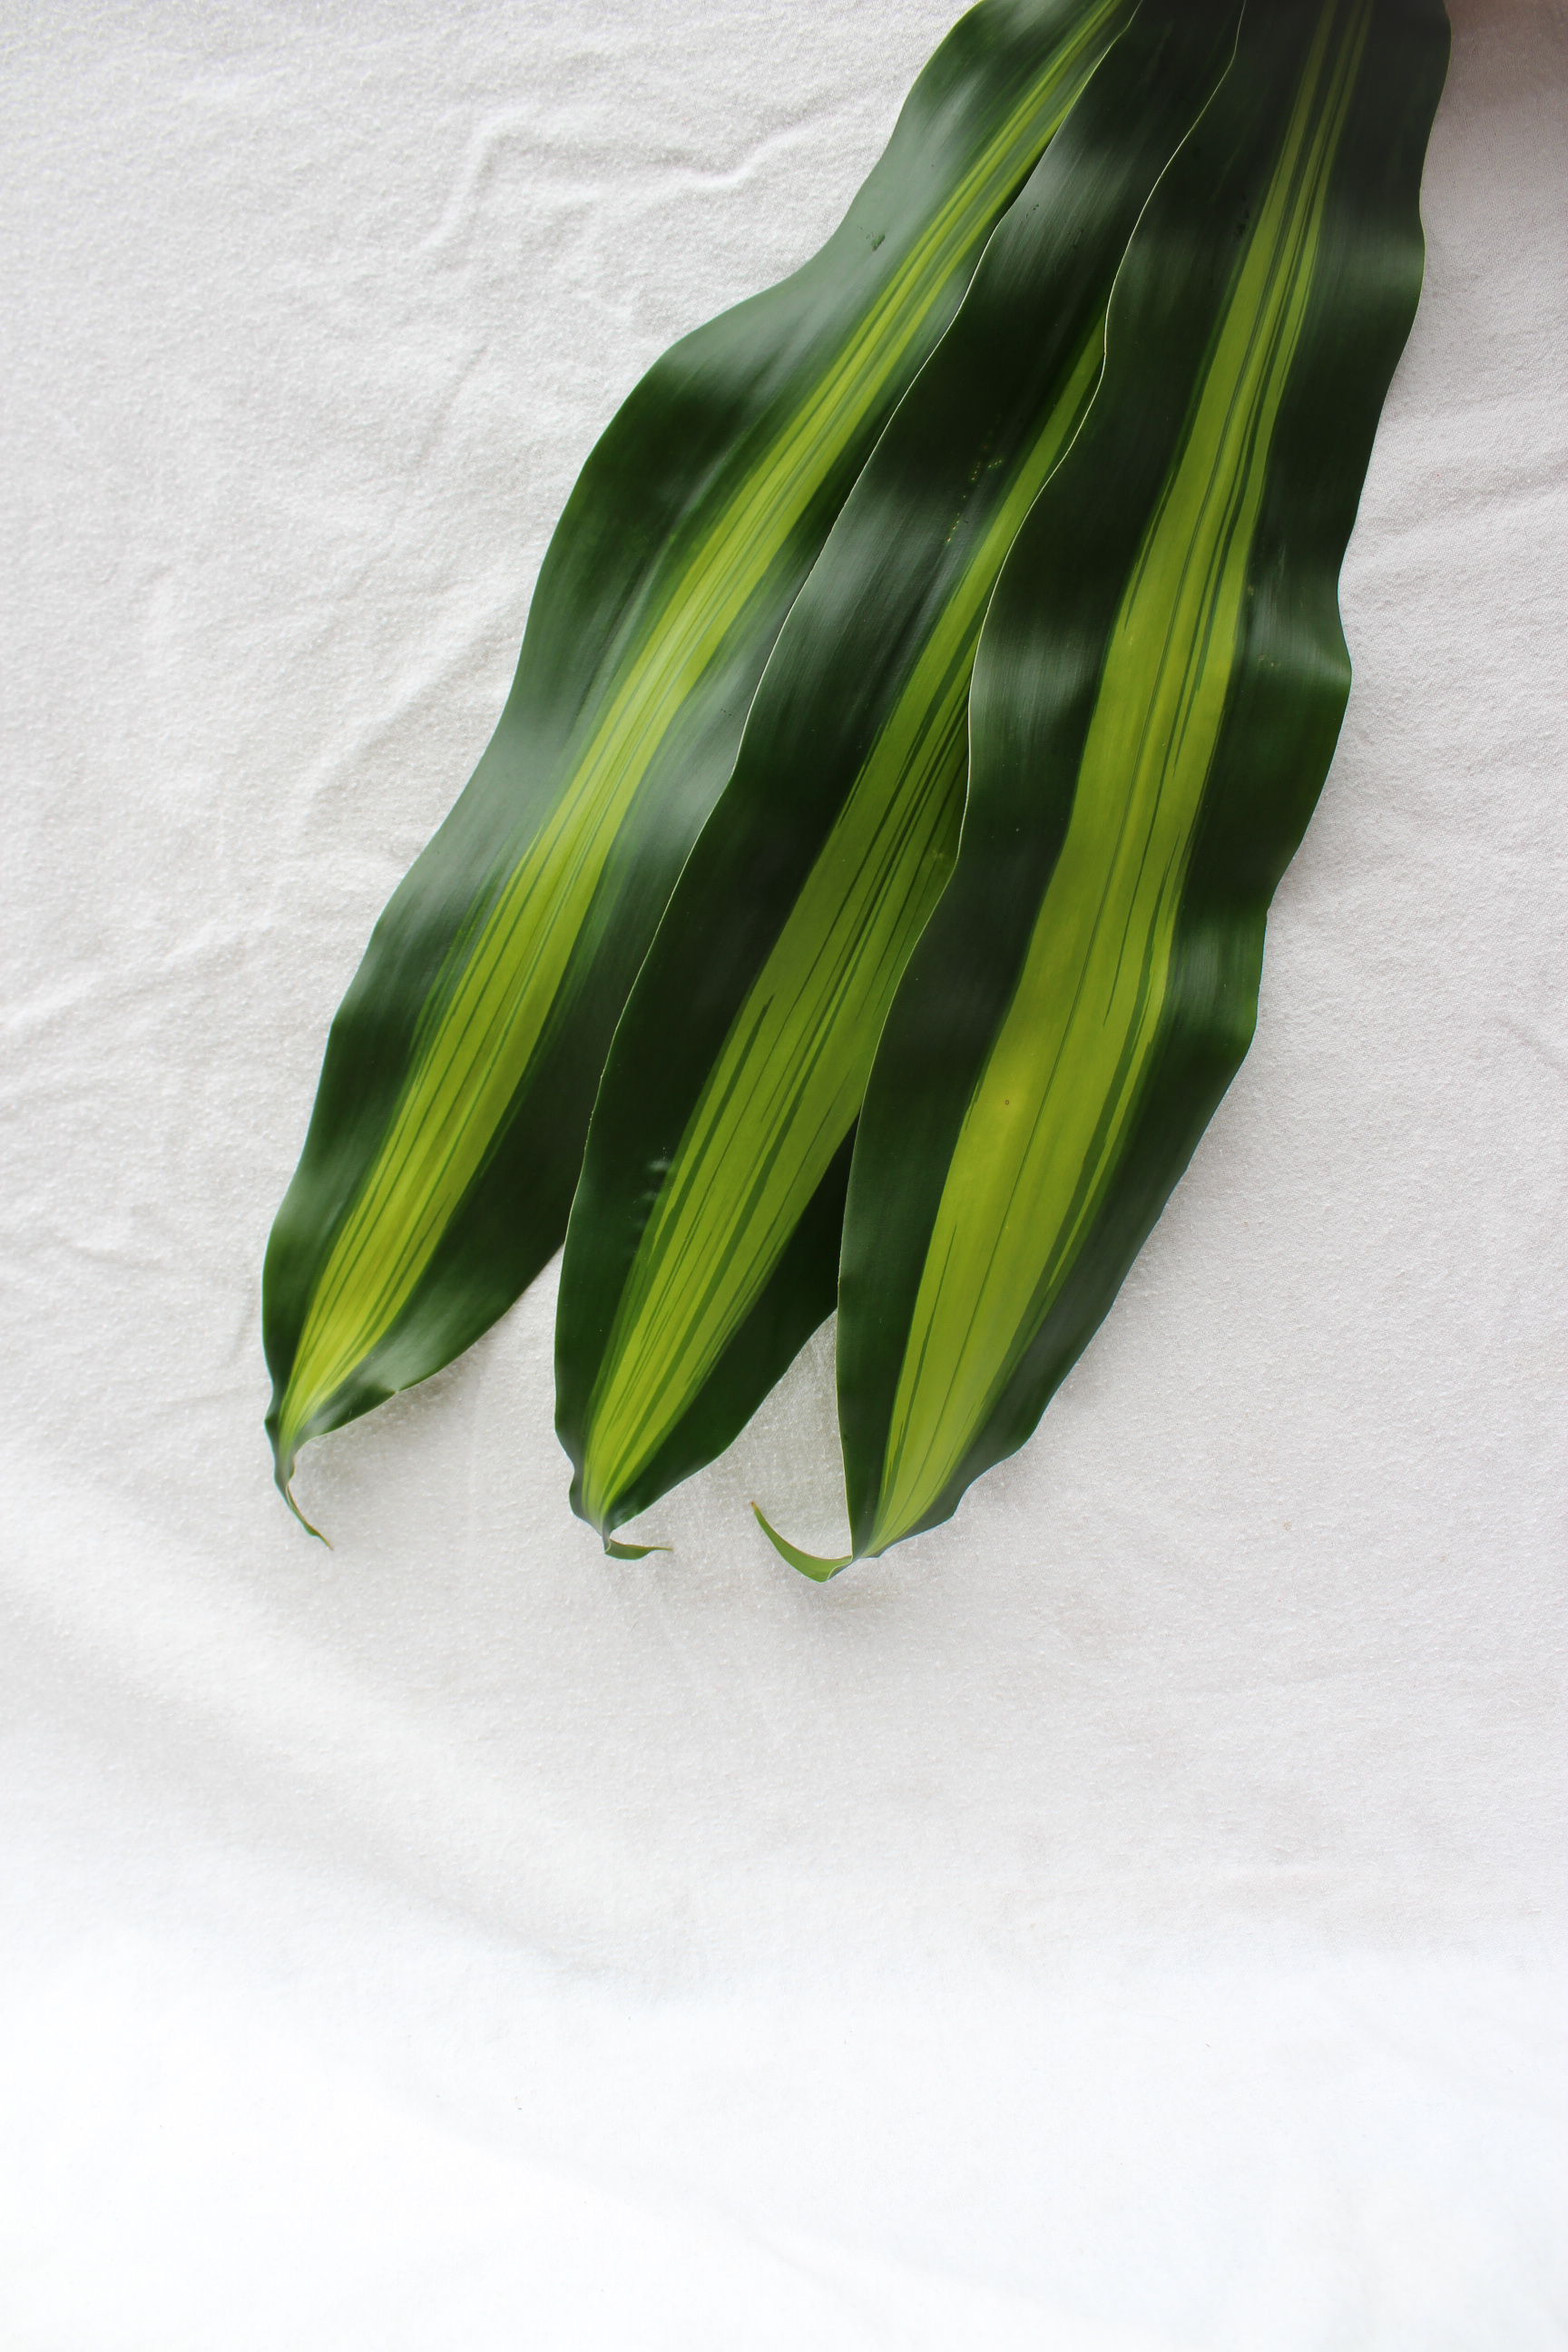 Cornstalk Dracaena Dark and Light Green